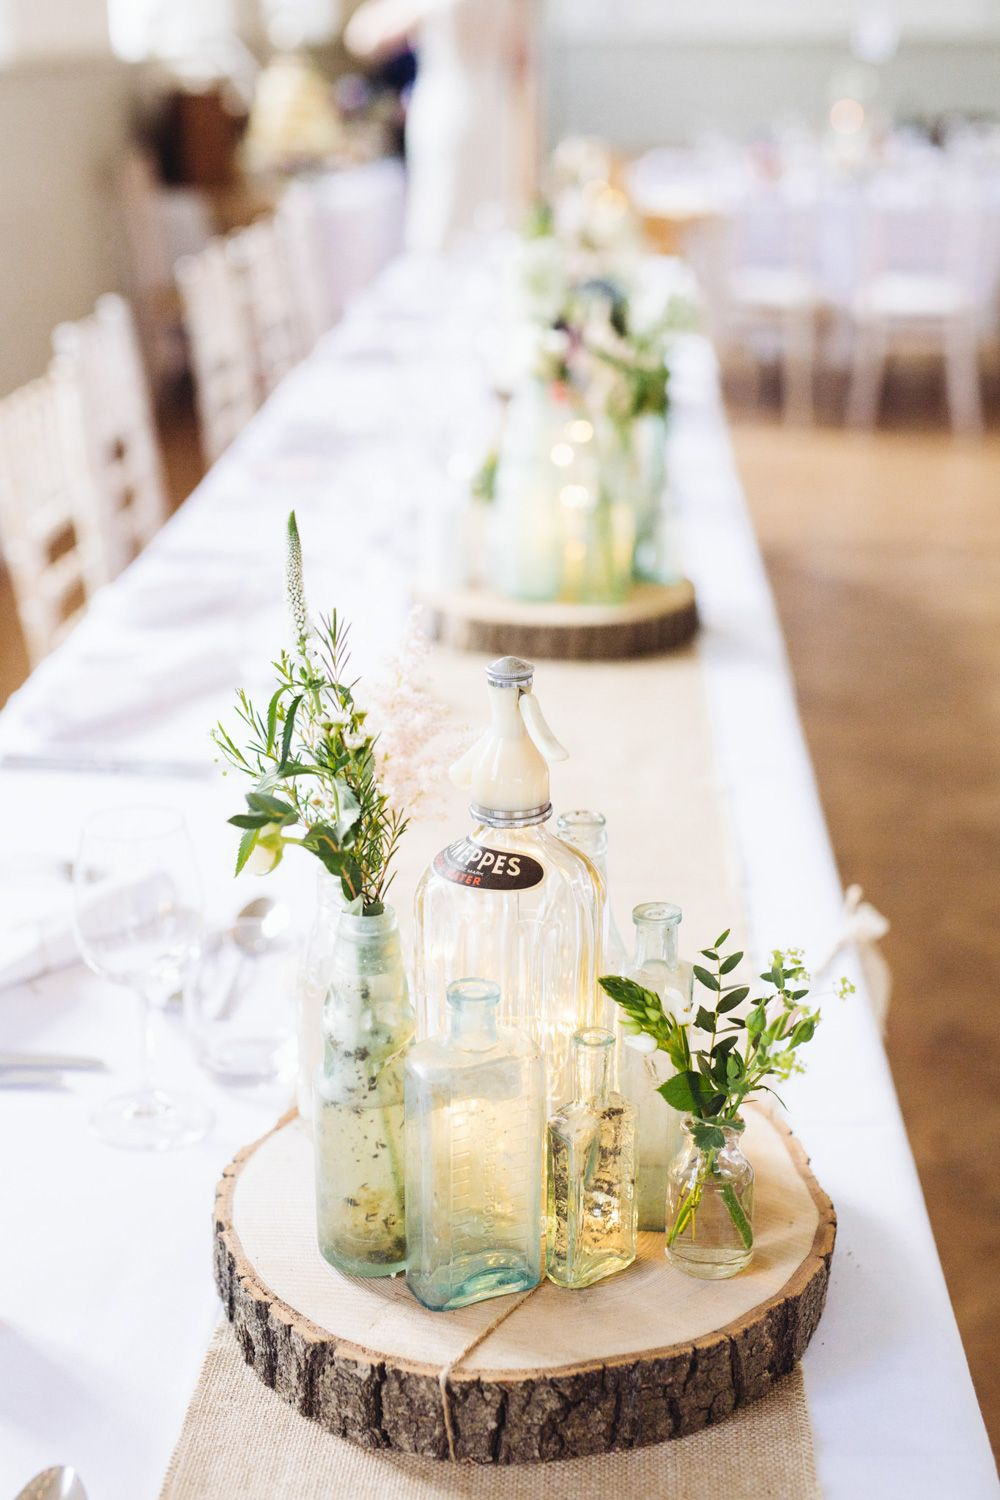 Hastoe Hall dry hire wedding venue in Tring for rustic themed ...